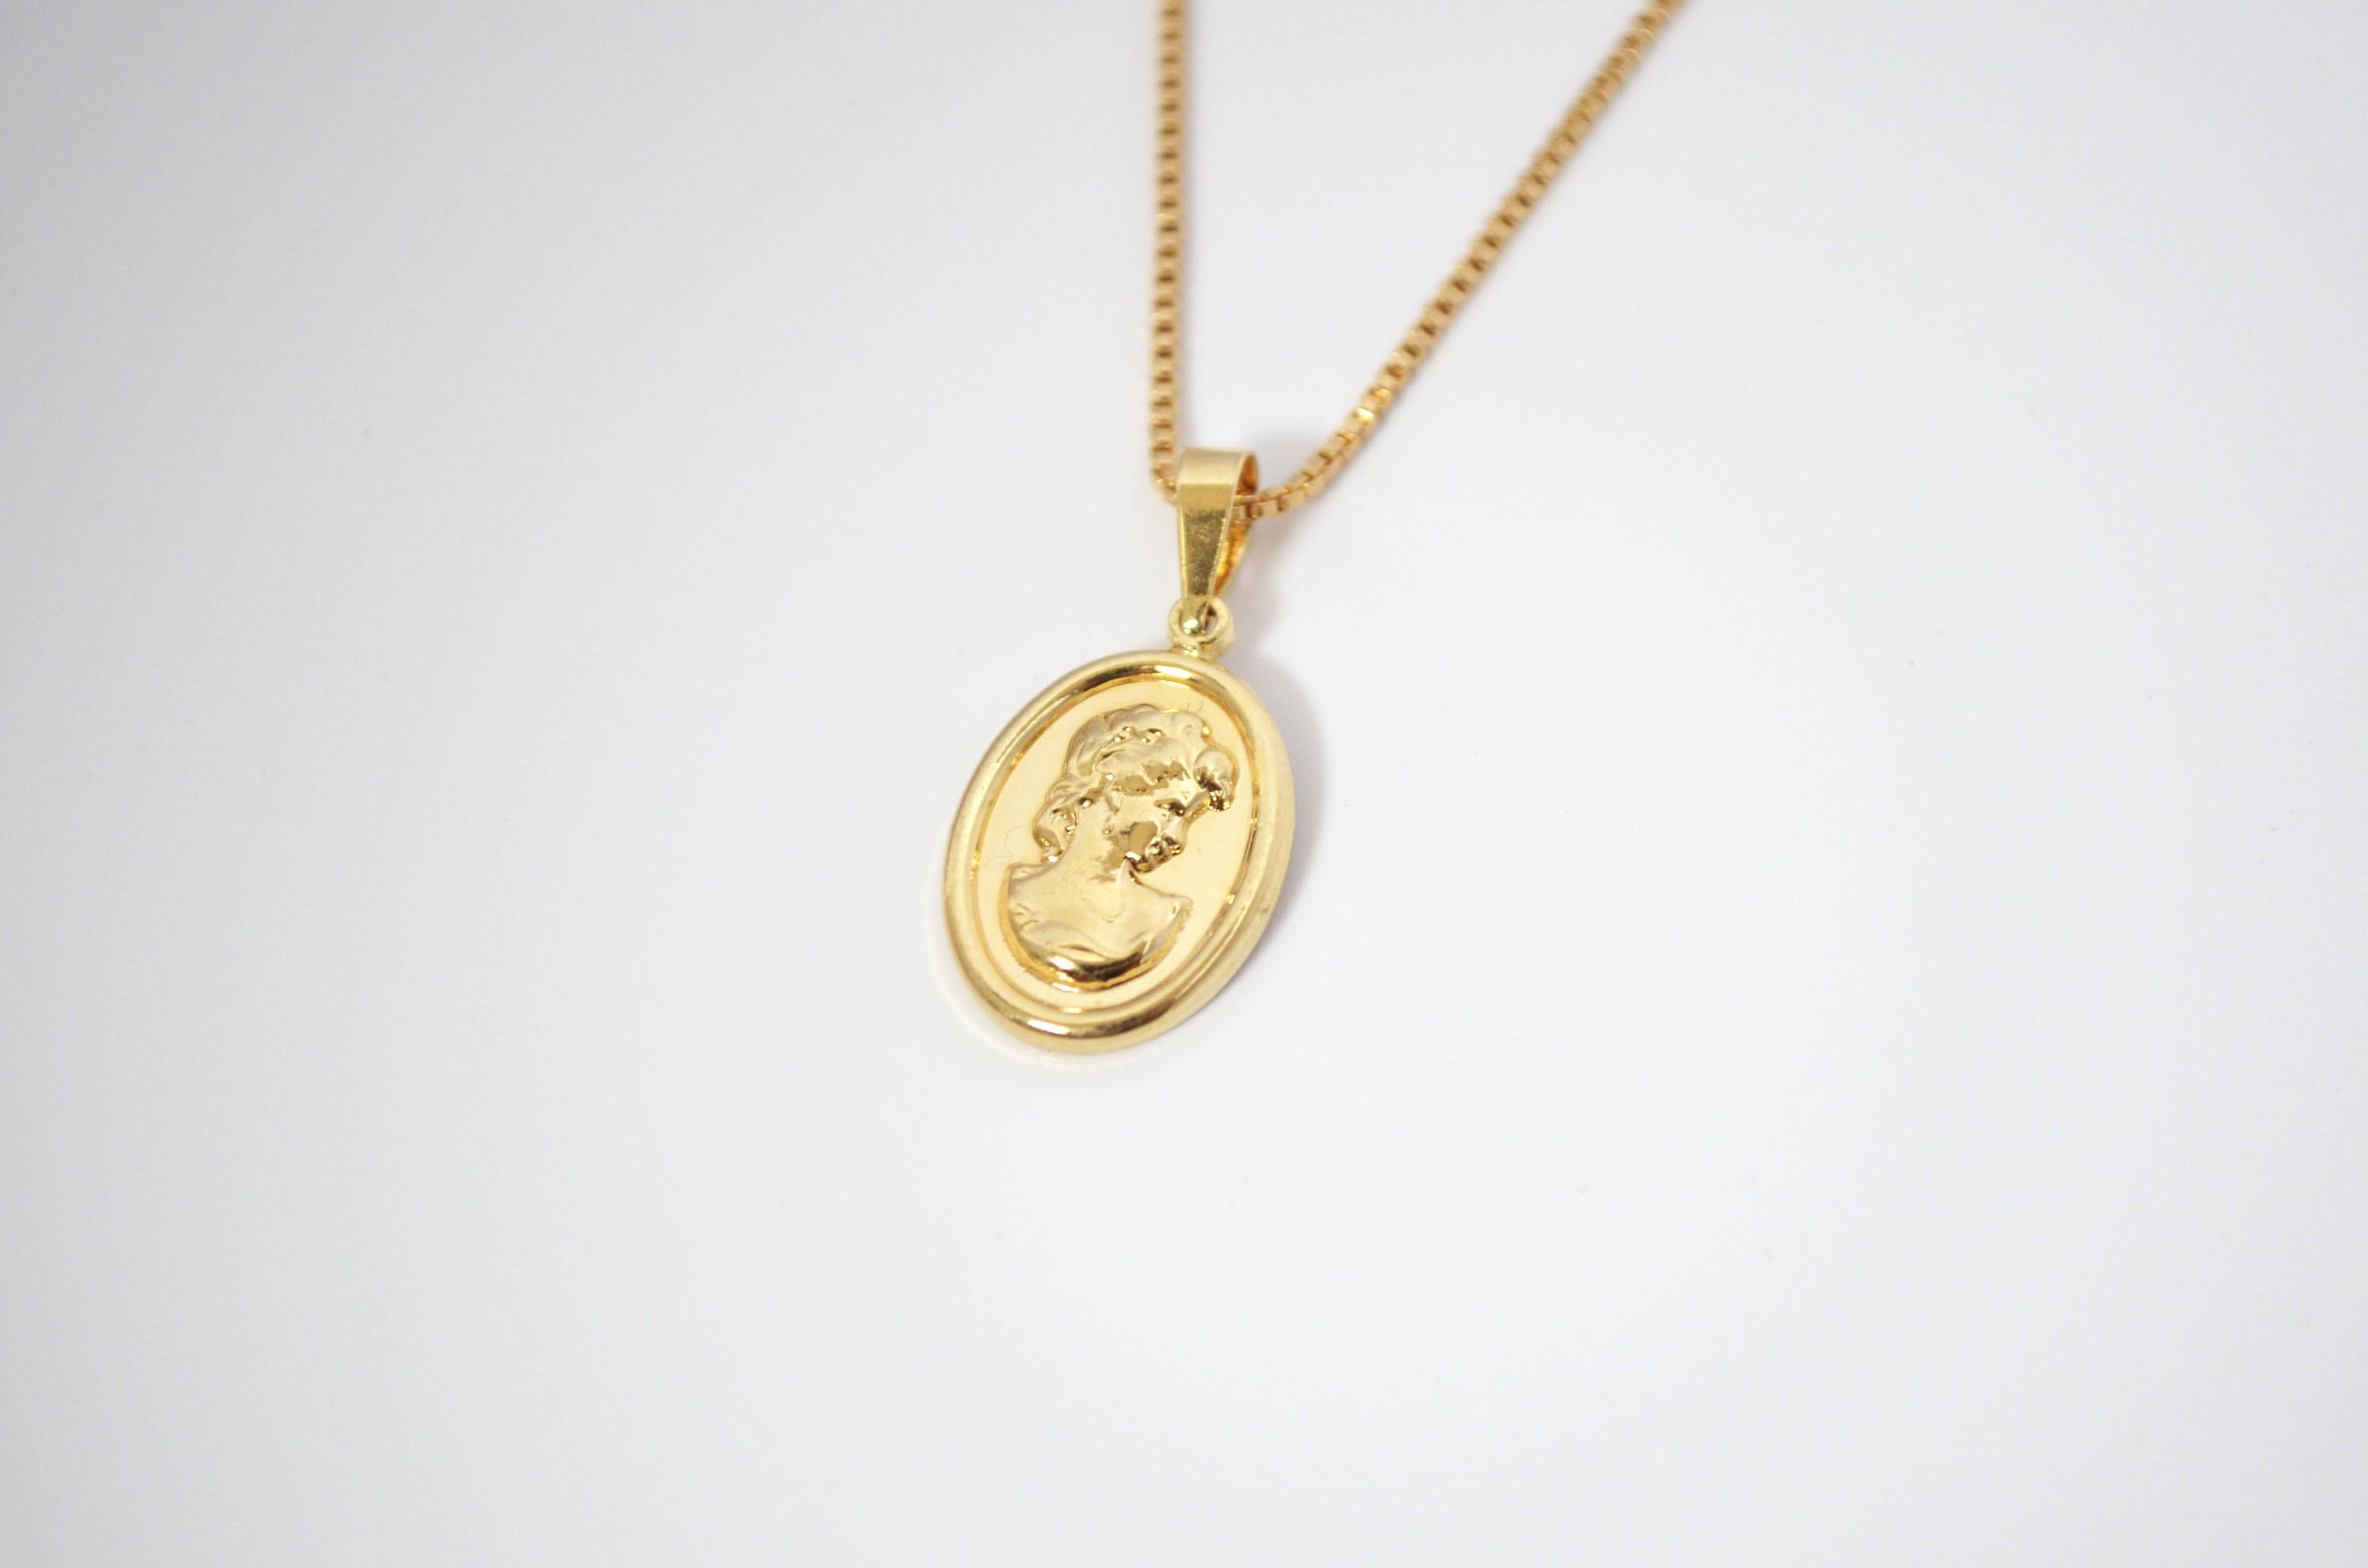 free watches shipping and gold necklace overstock guardian jewelry chain angel wheat today medallion our product yellow